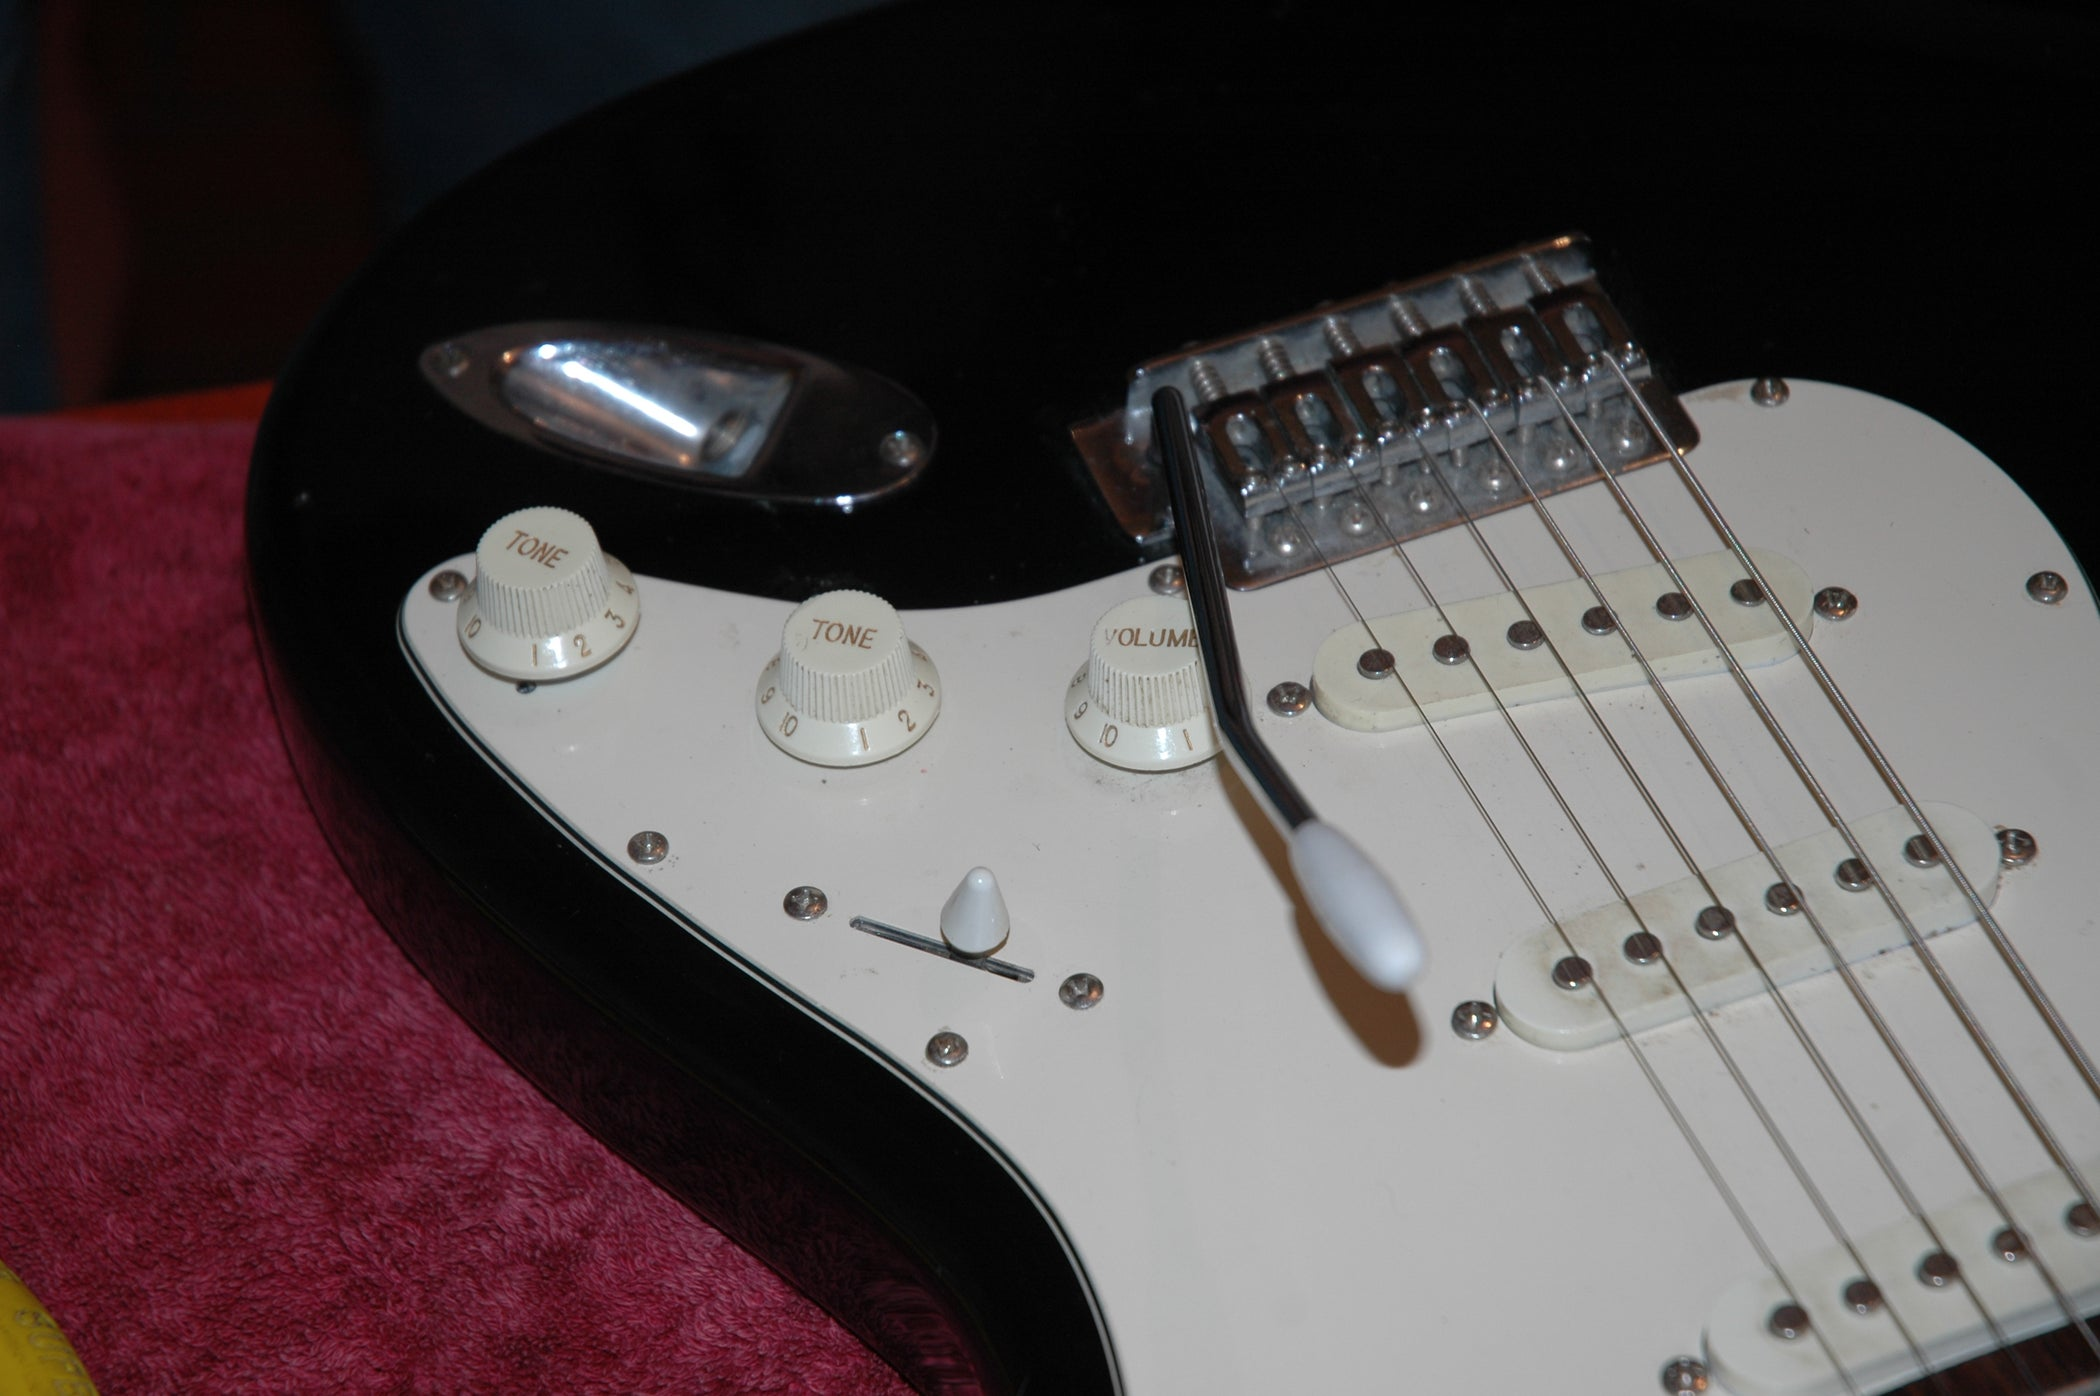 Varitone Mod On Stratocaster Clone Guitar 7 Steps With Pictures Strat Wiring 2 Tone Caps